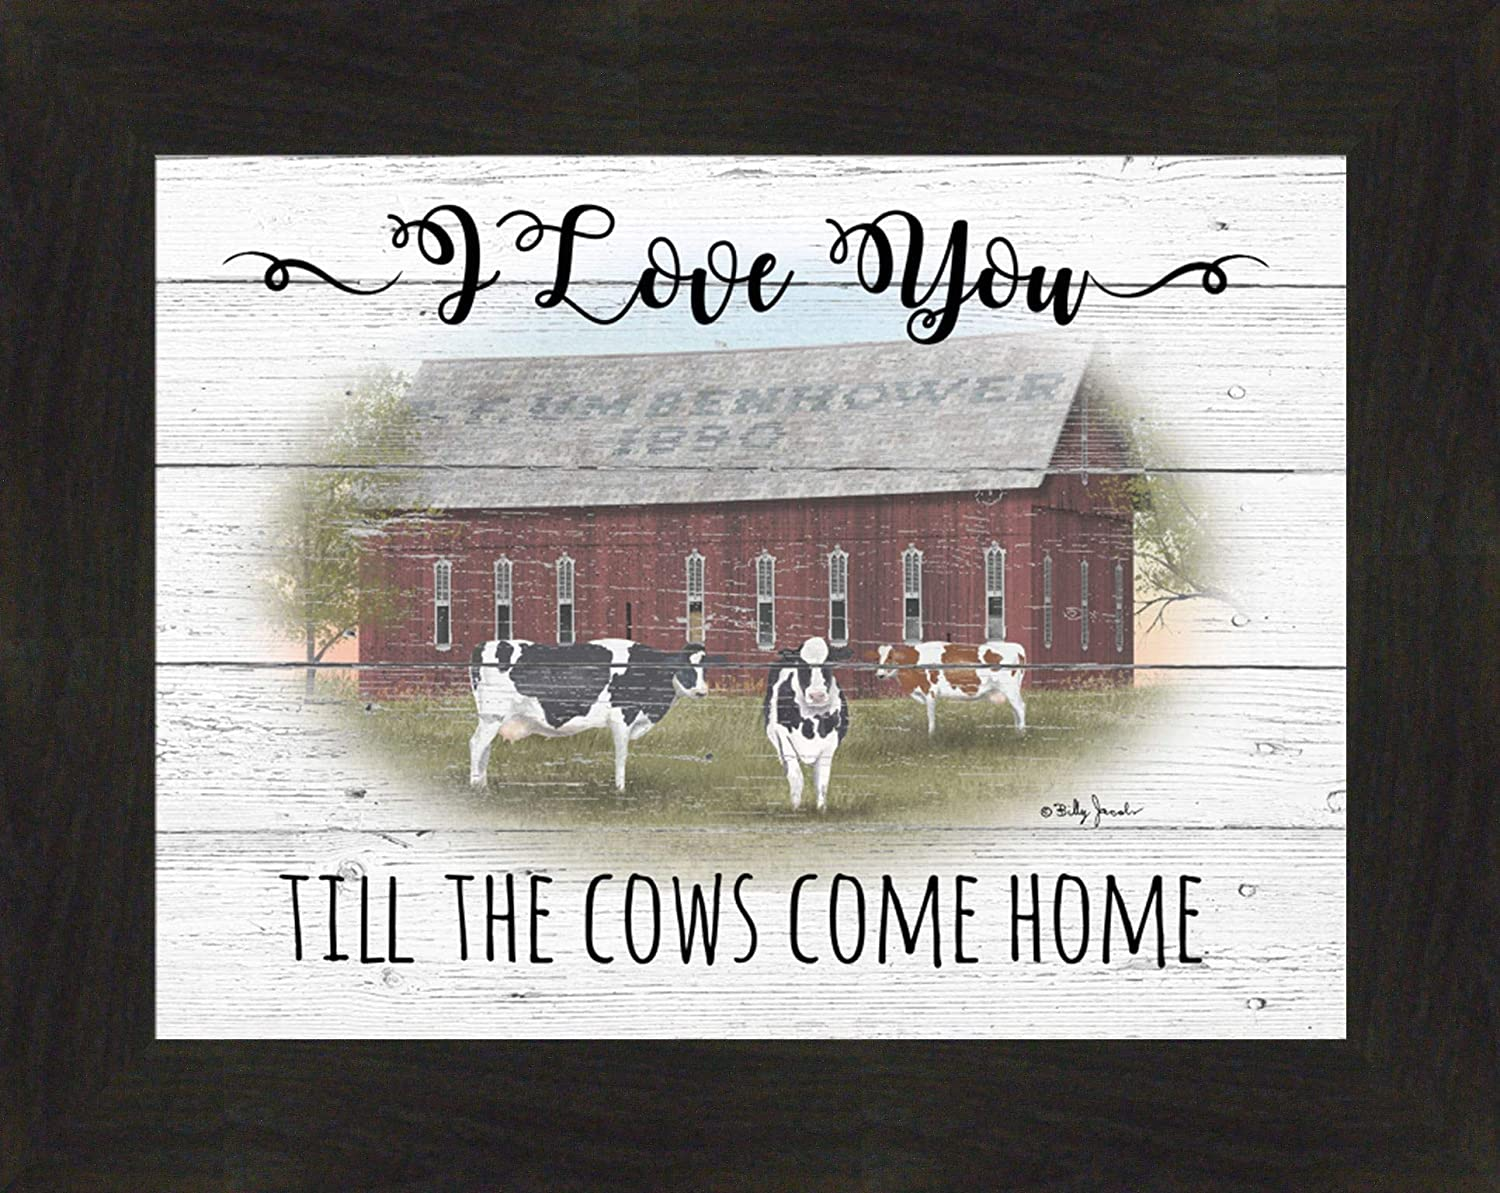 Till The Cows Come Home by Billy Jacobs 16x20 I Love You Red Barn Holstein Rustic Weathered White Sign Framed Art Print Picture